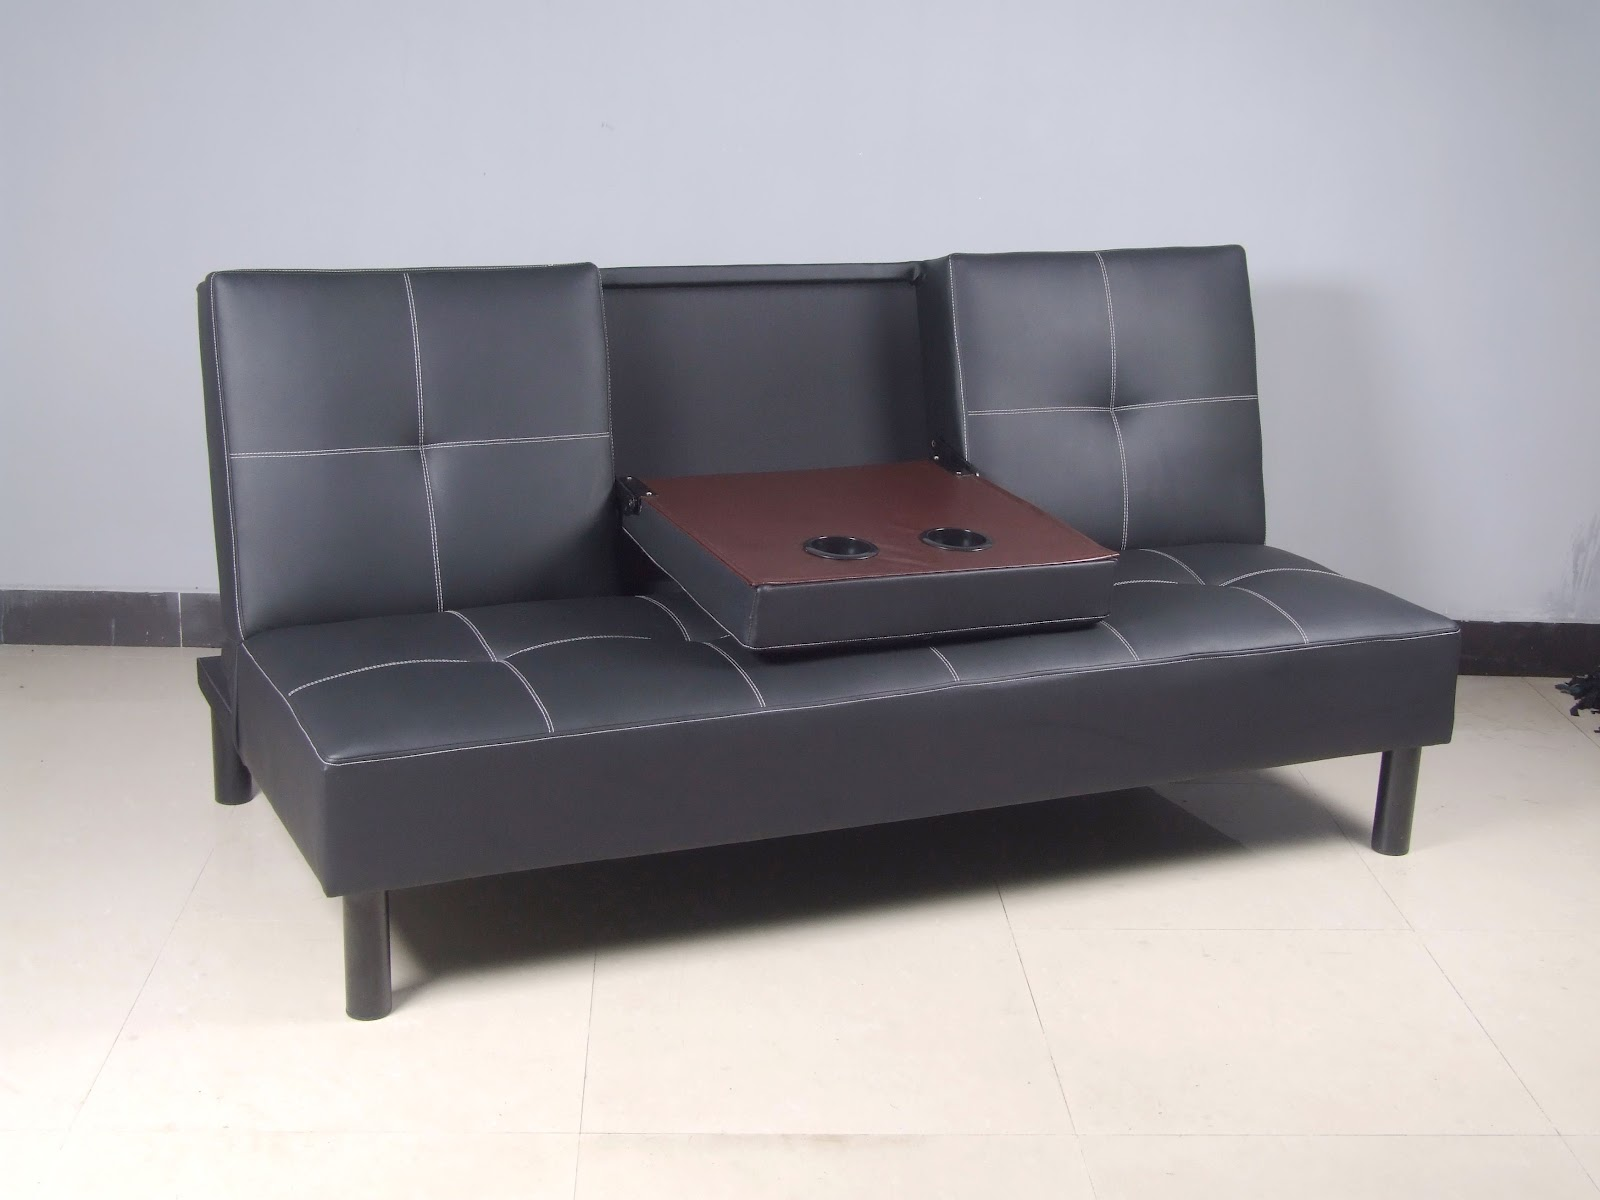 sleeper sofa bed best sofas toronto click clack chair modern leather